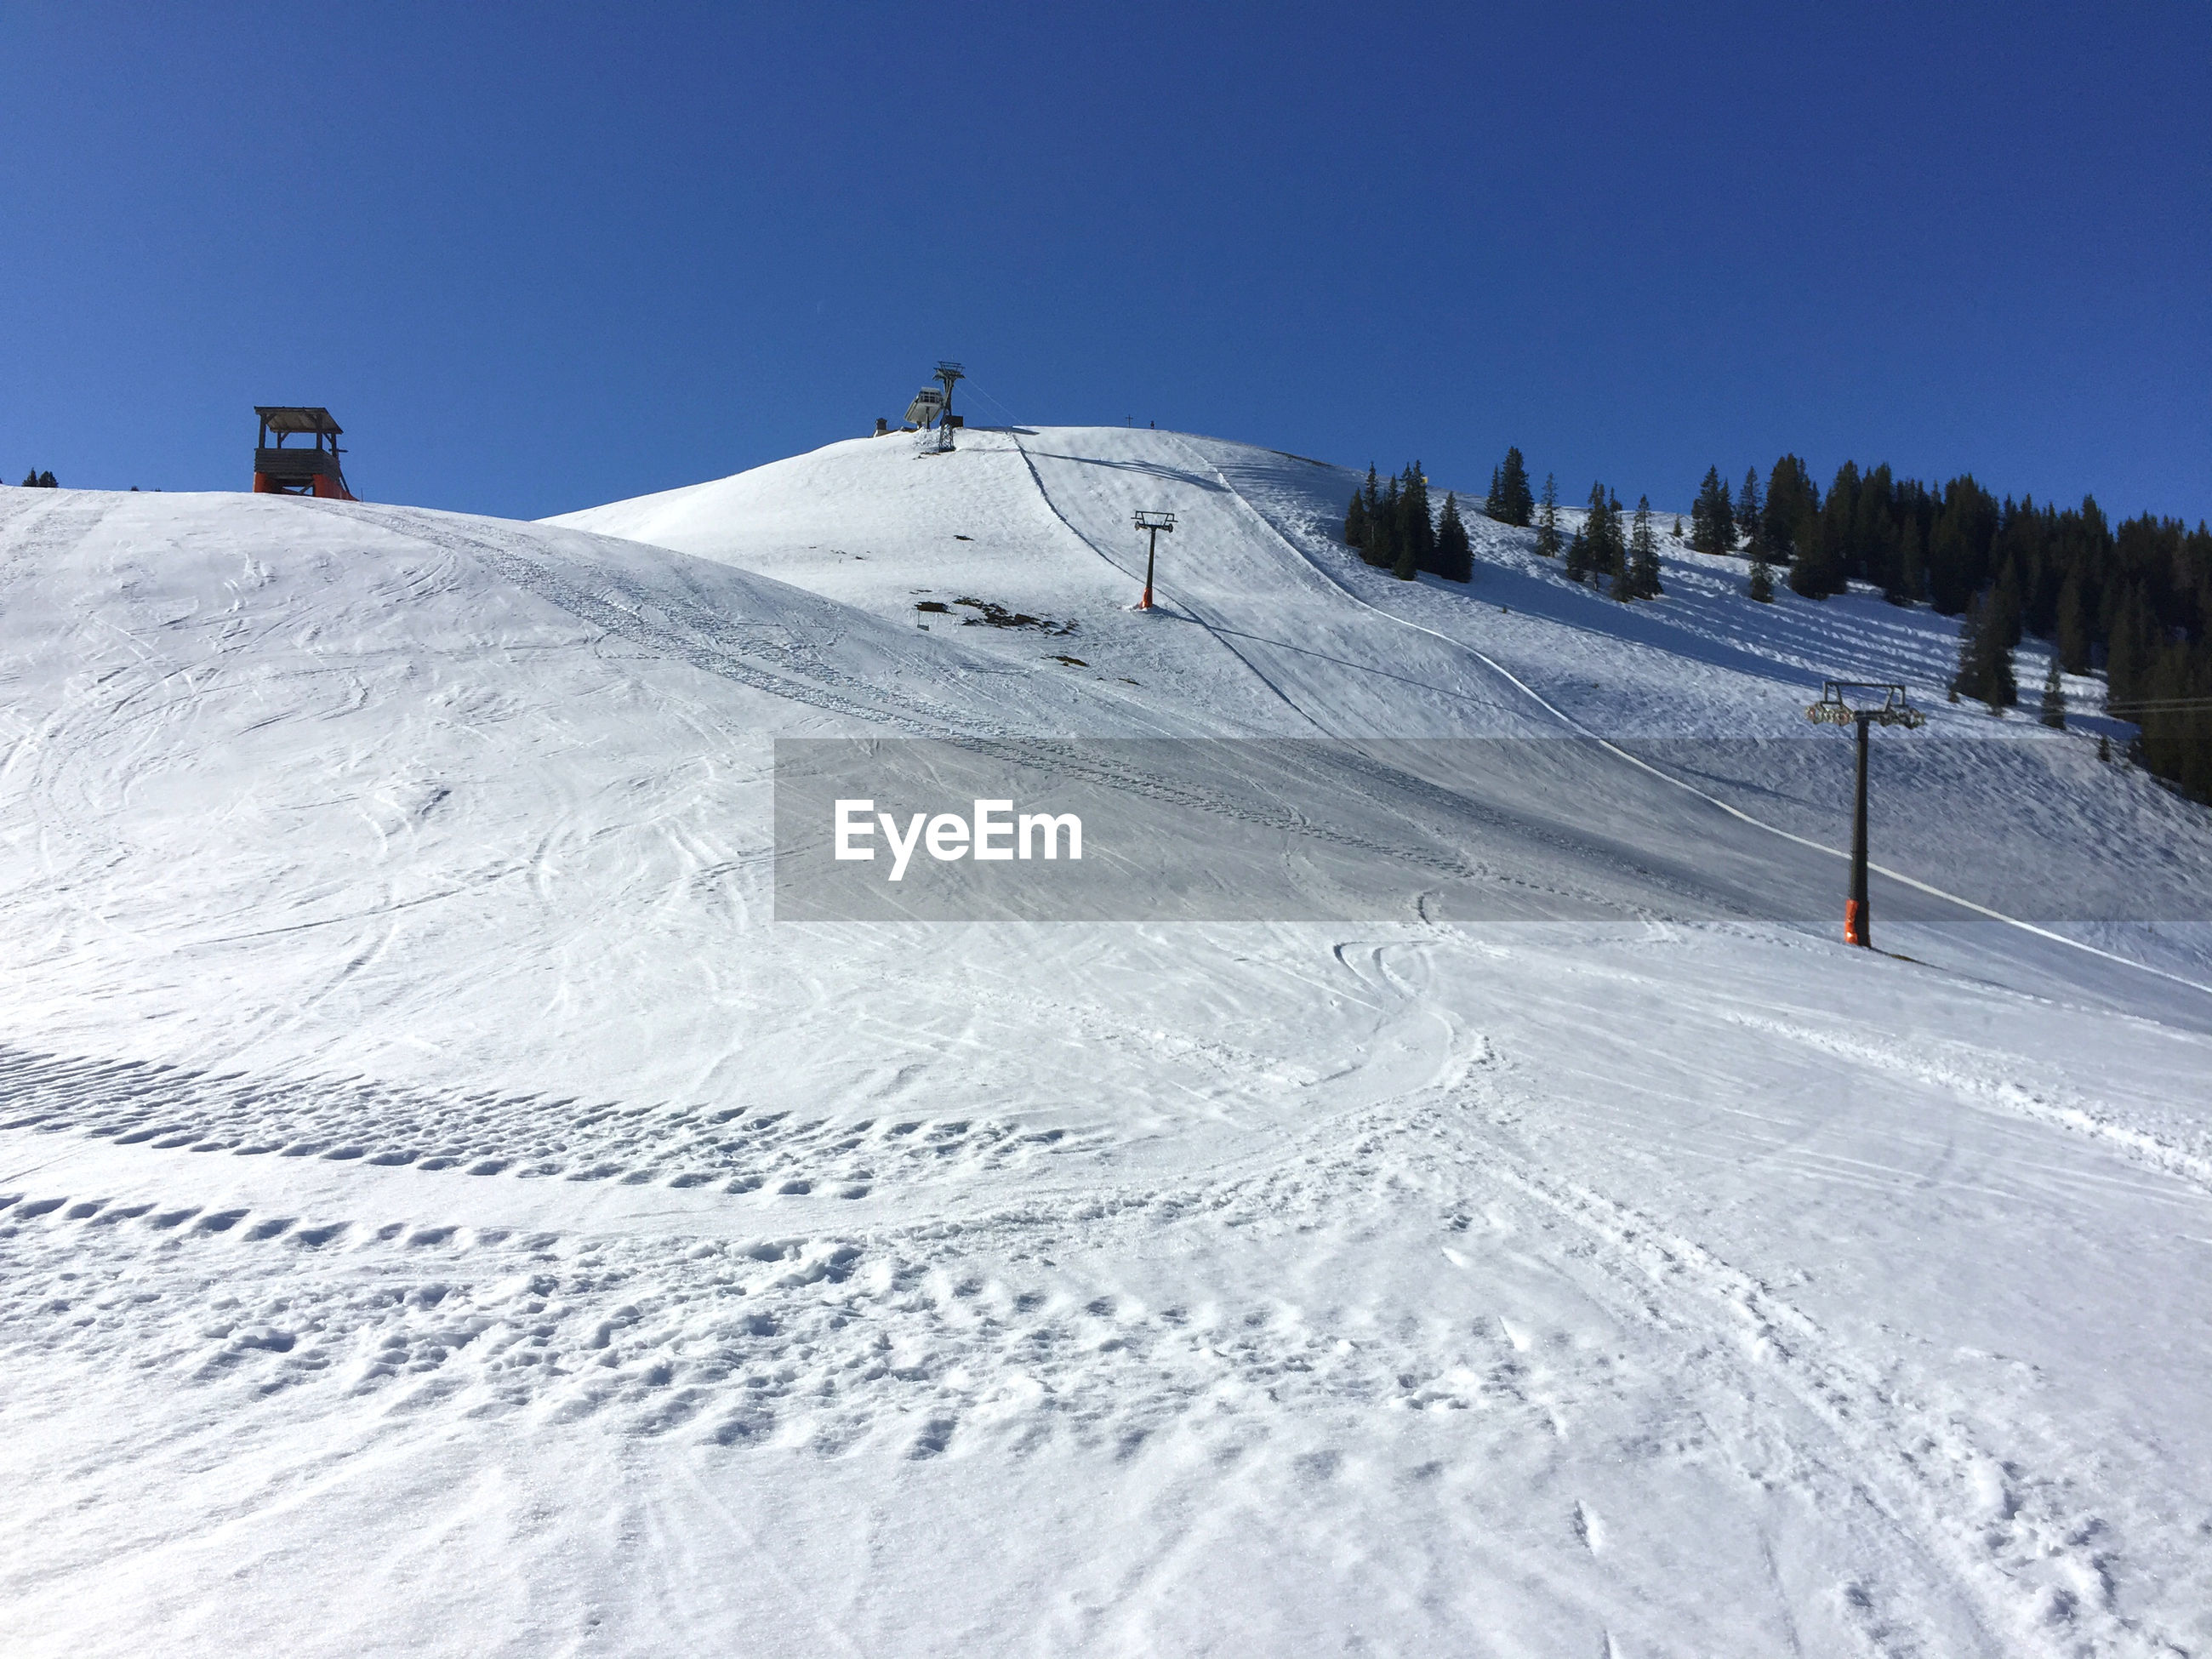 Snow covered skiing resort against clear blue sky